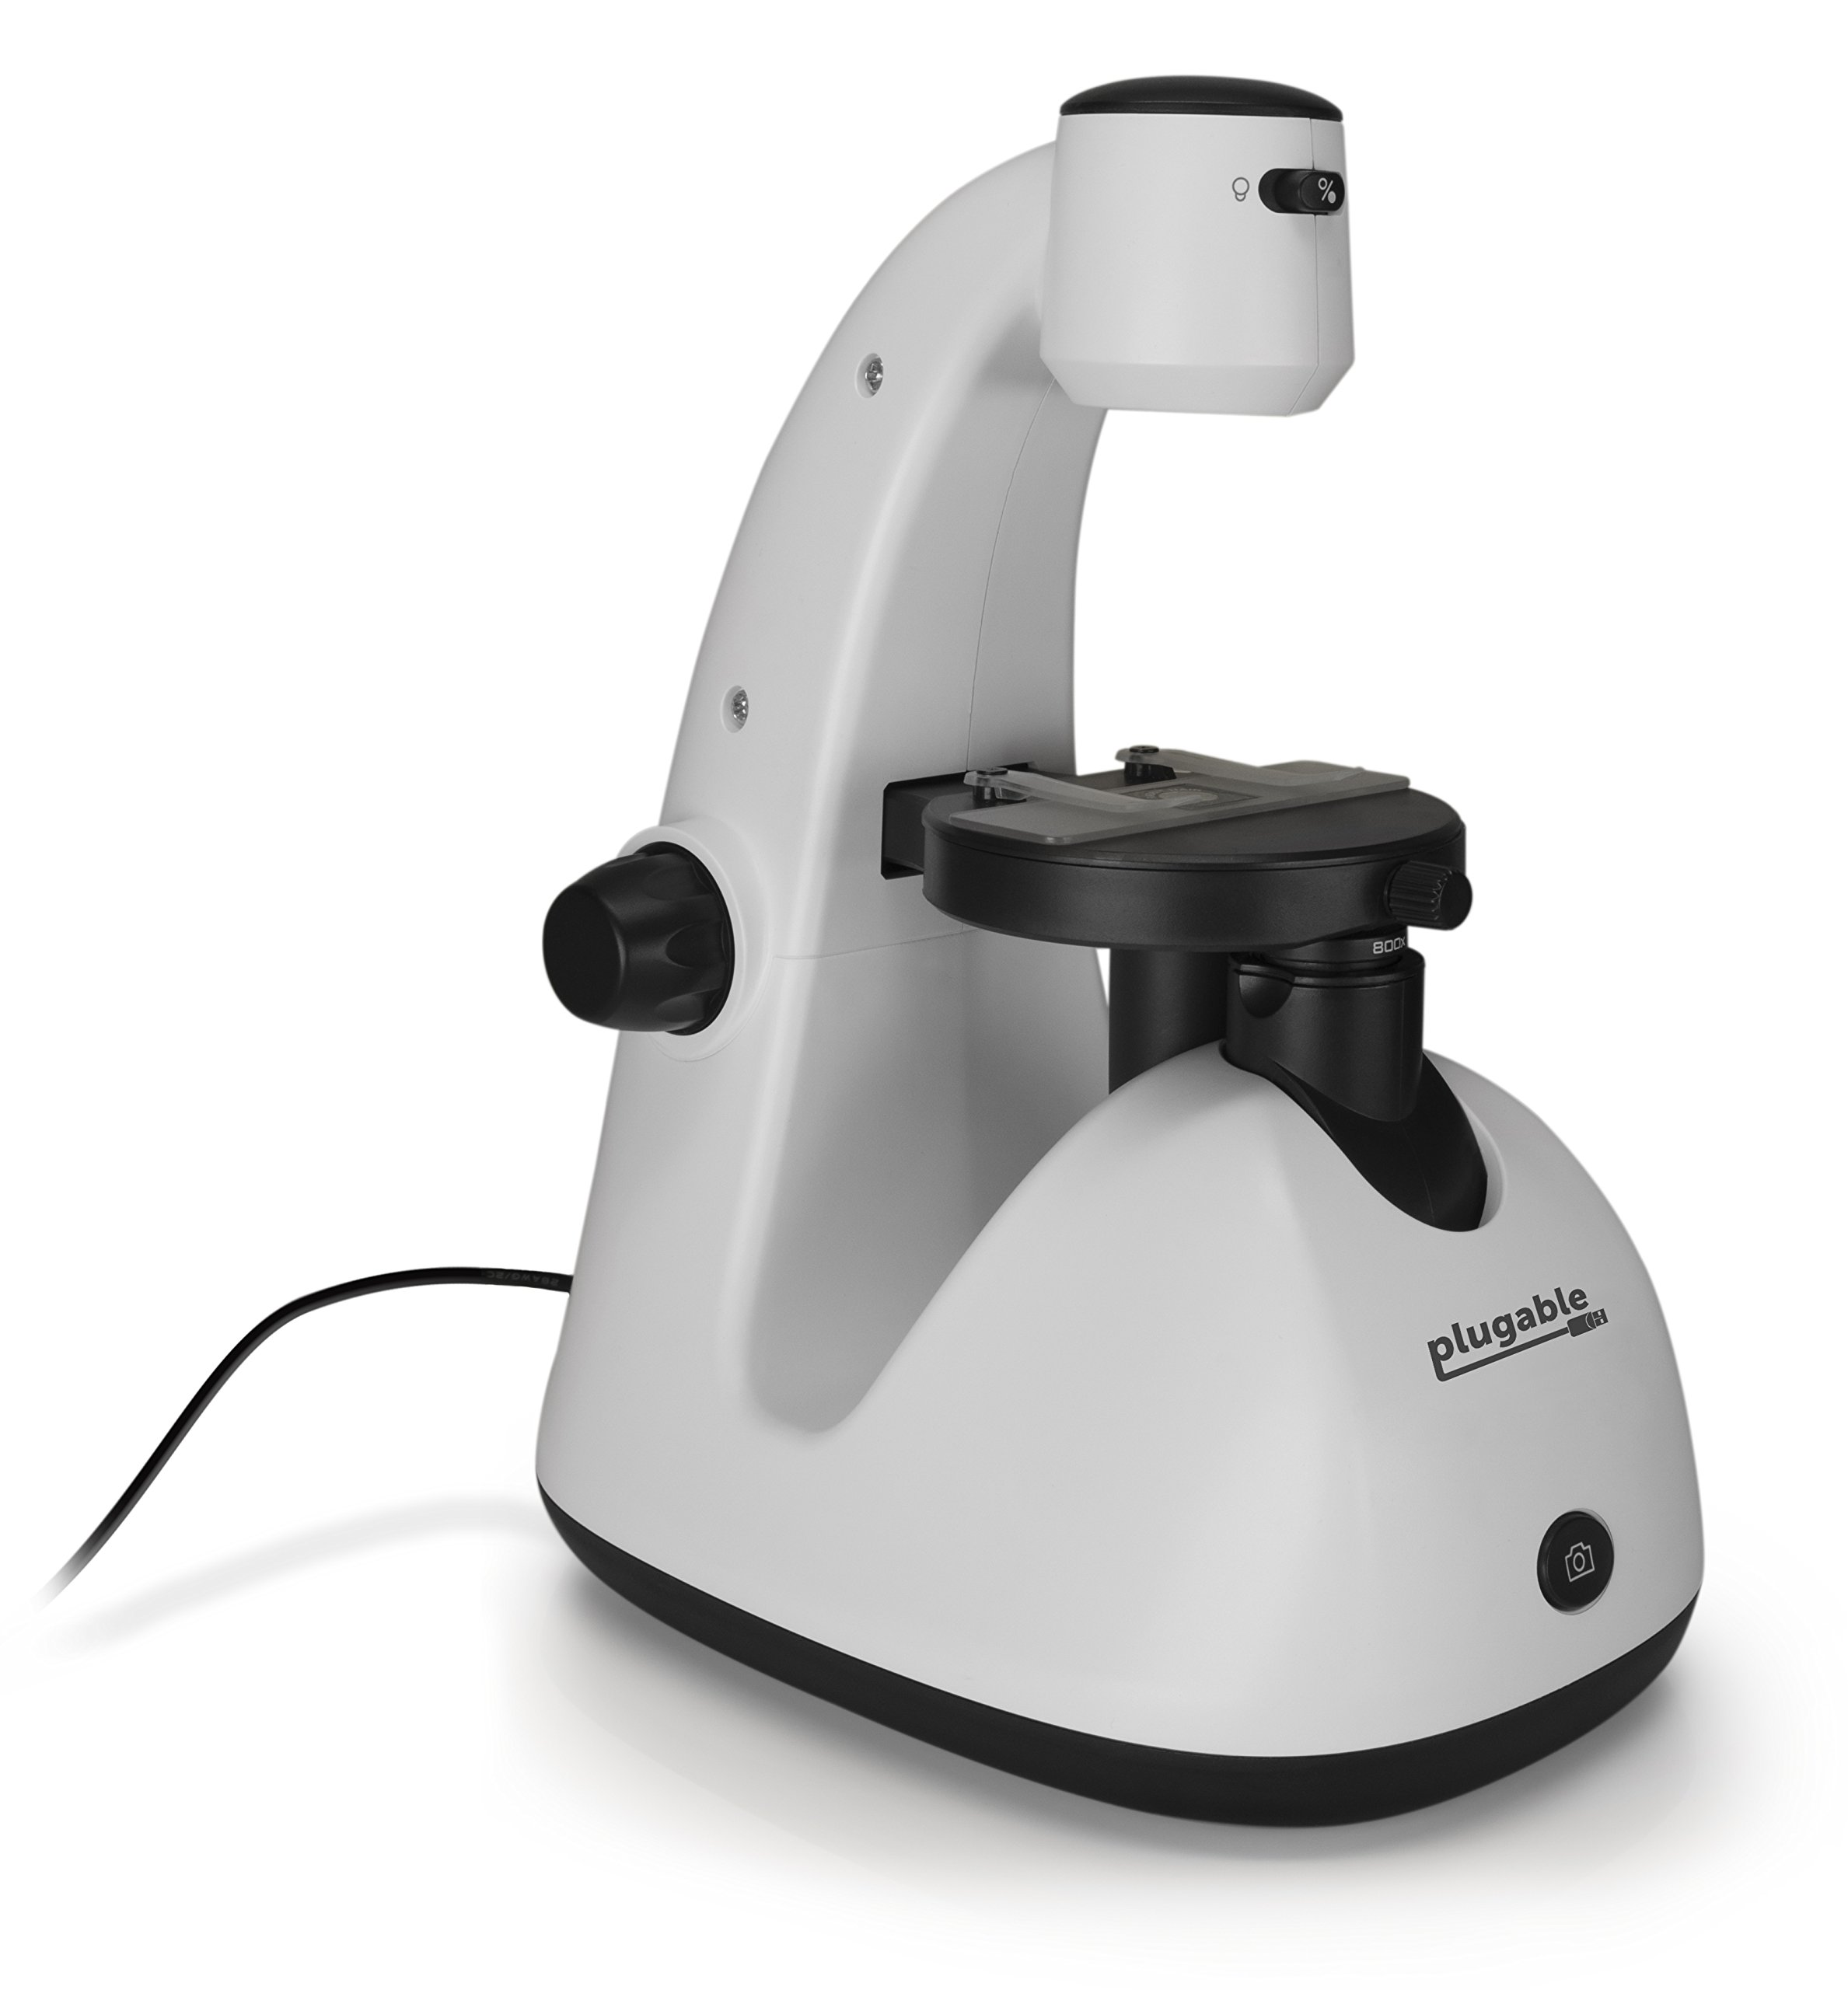 Plugable 800x Inverted Digital Optical USB Microscope for Windows, Mac, Linux, and Android (2MP, True 800x Magnification)